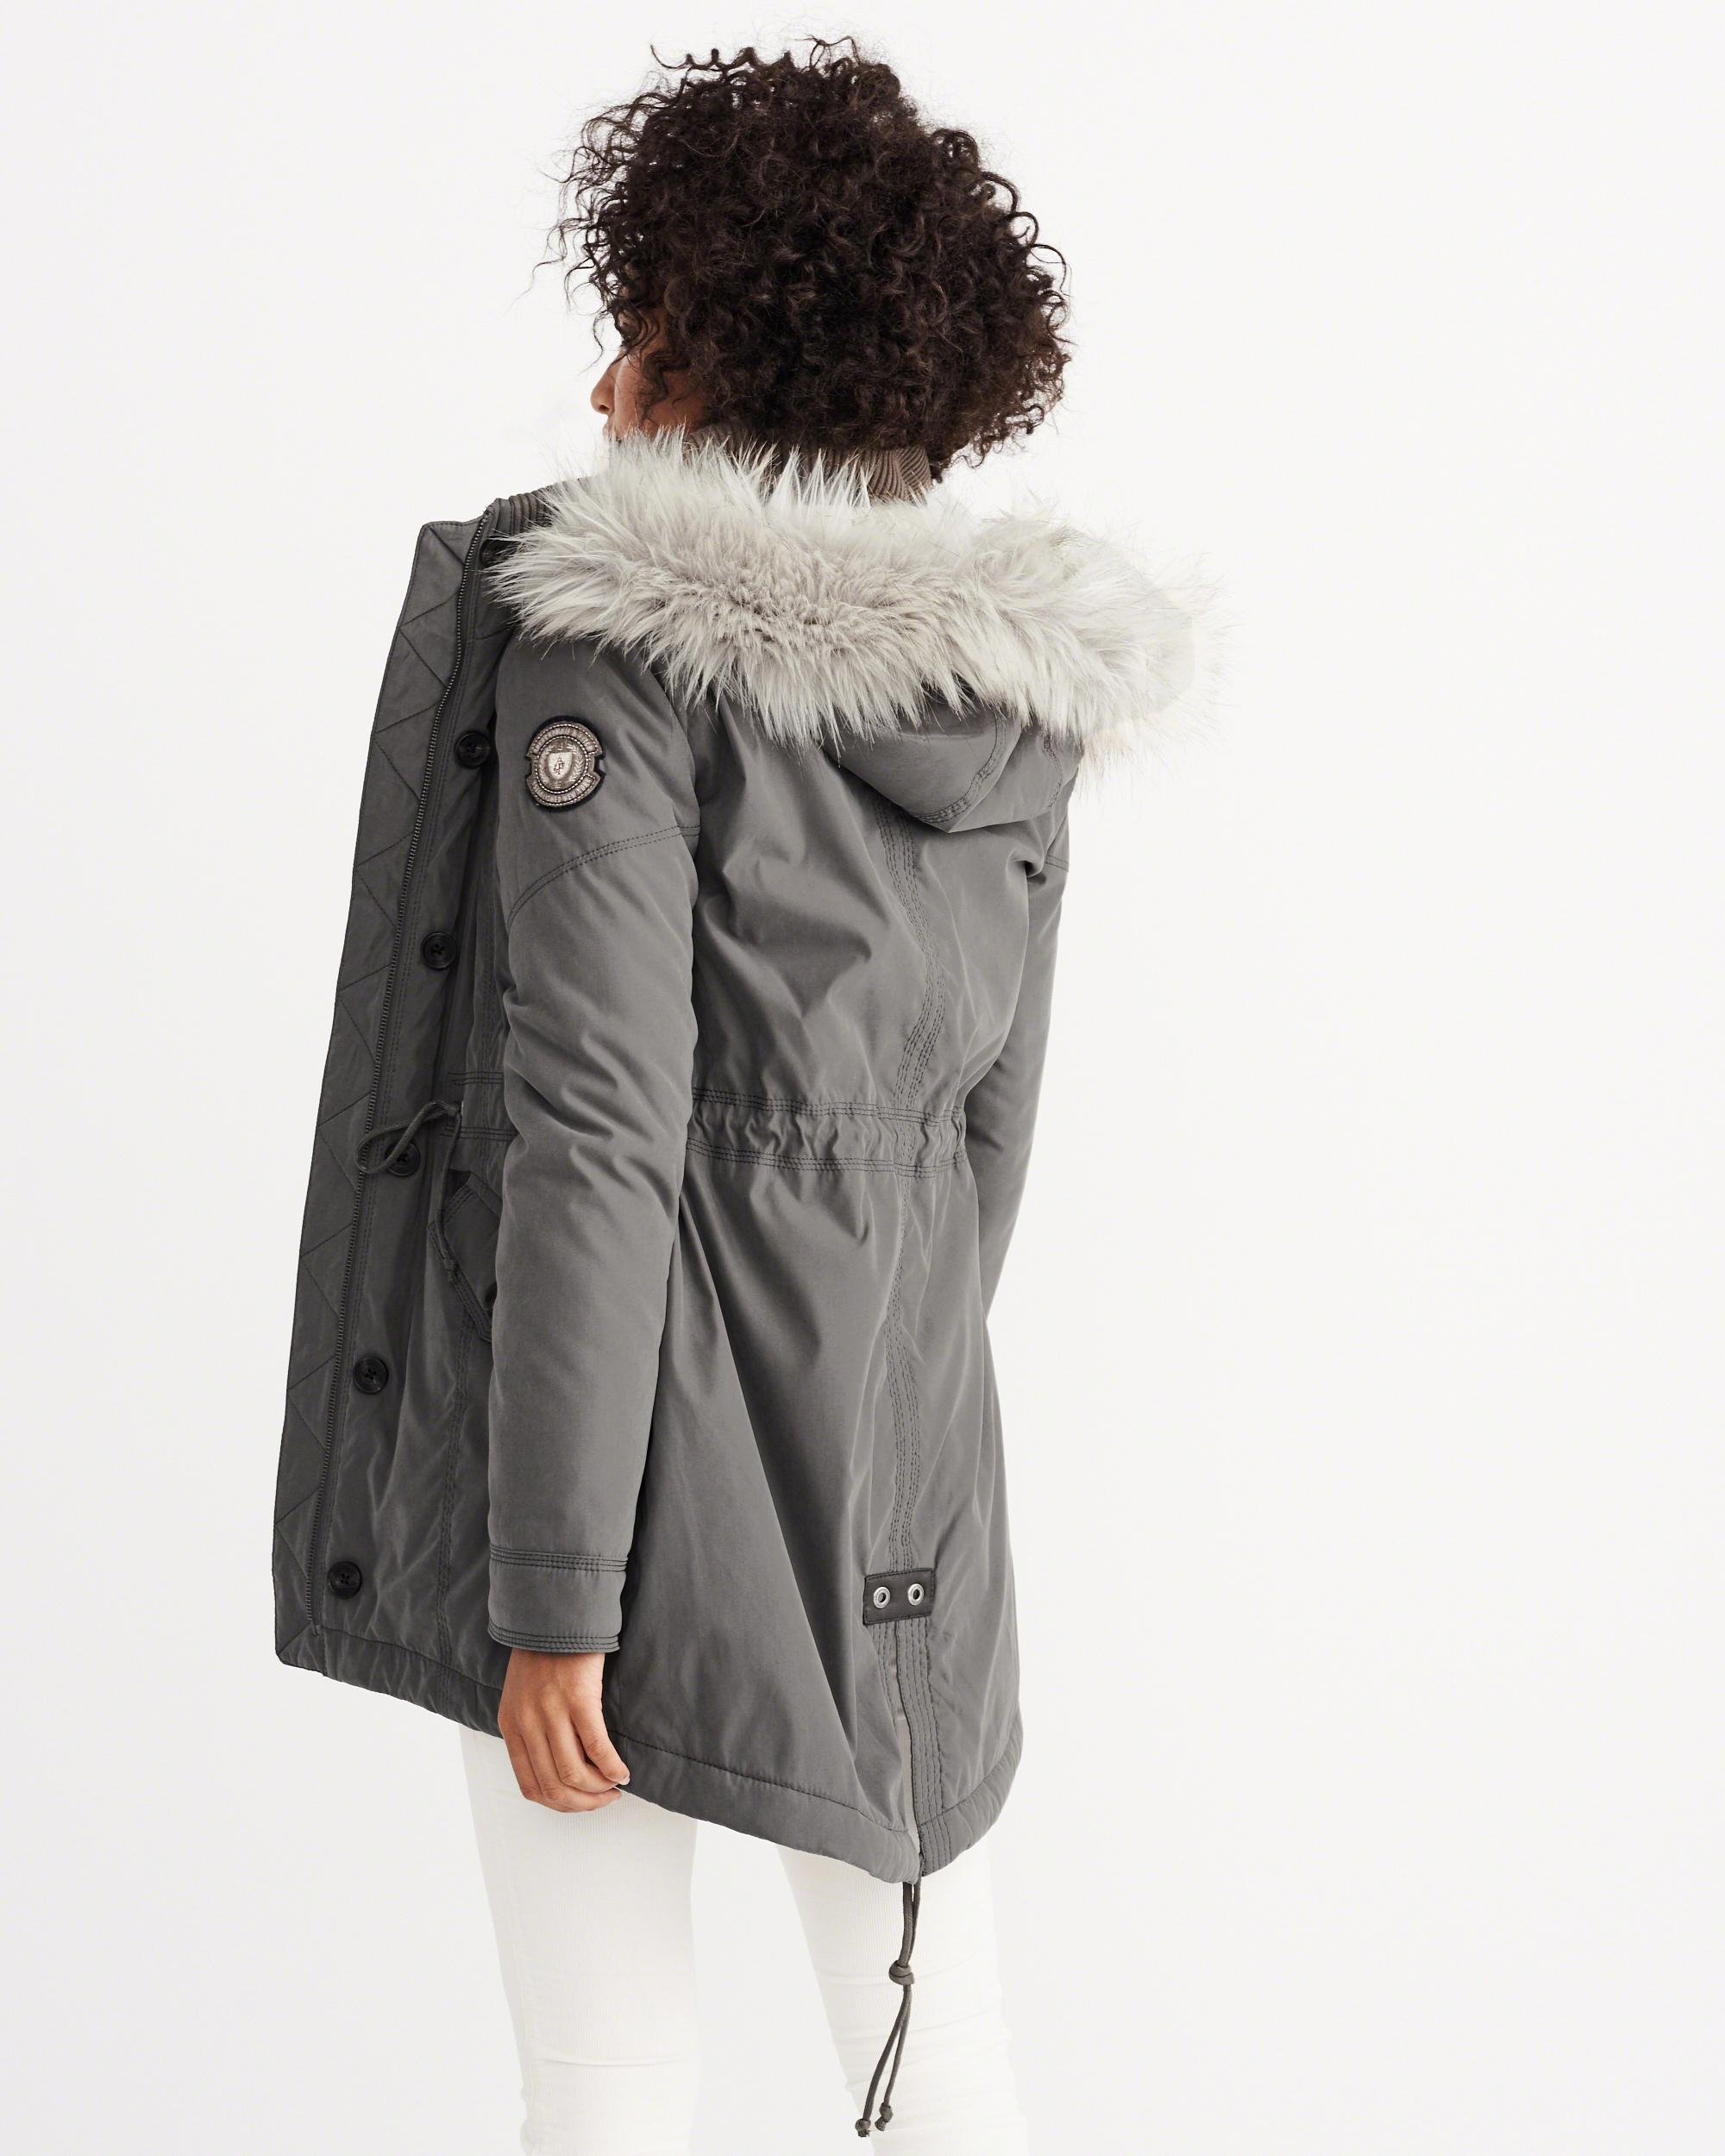 Abercrombie & fitch Sherpa-lined Military Parka in Gray | Lyst